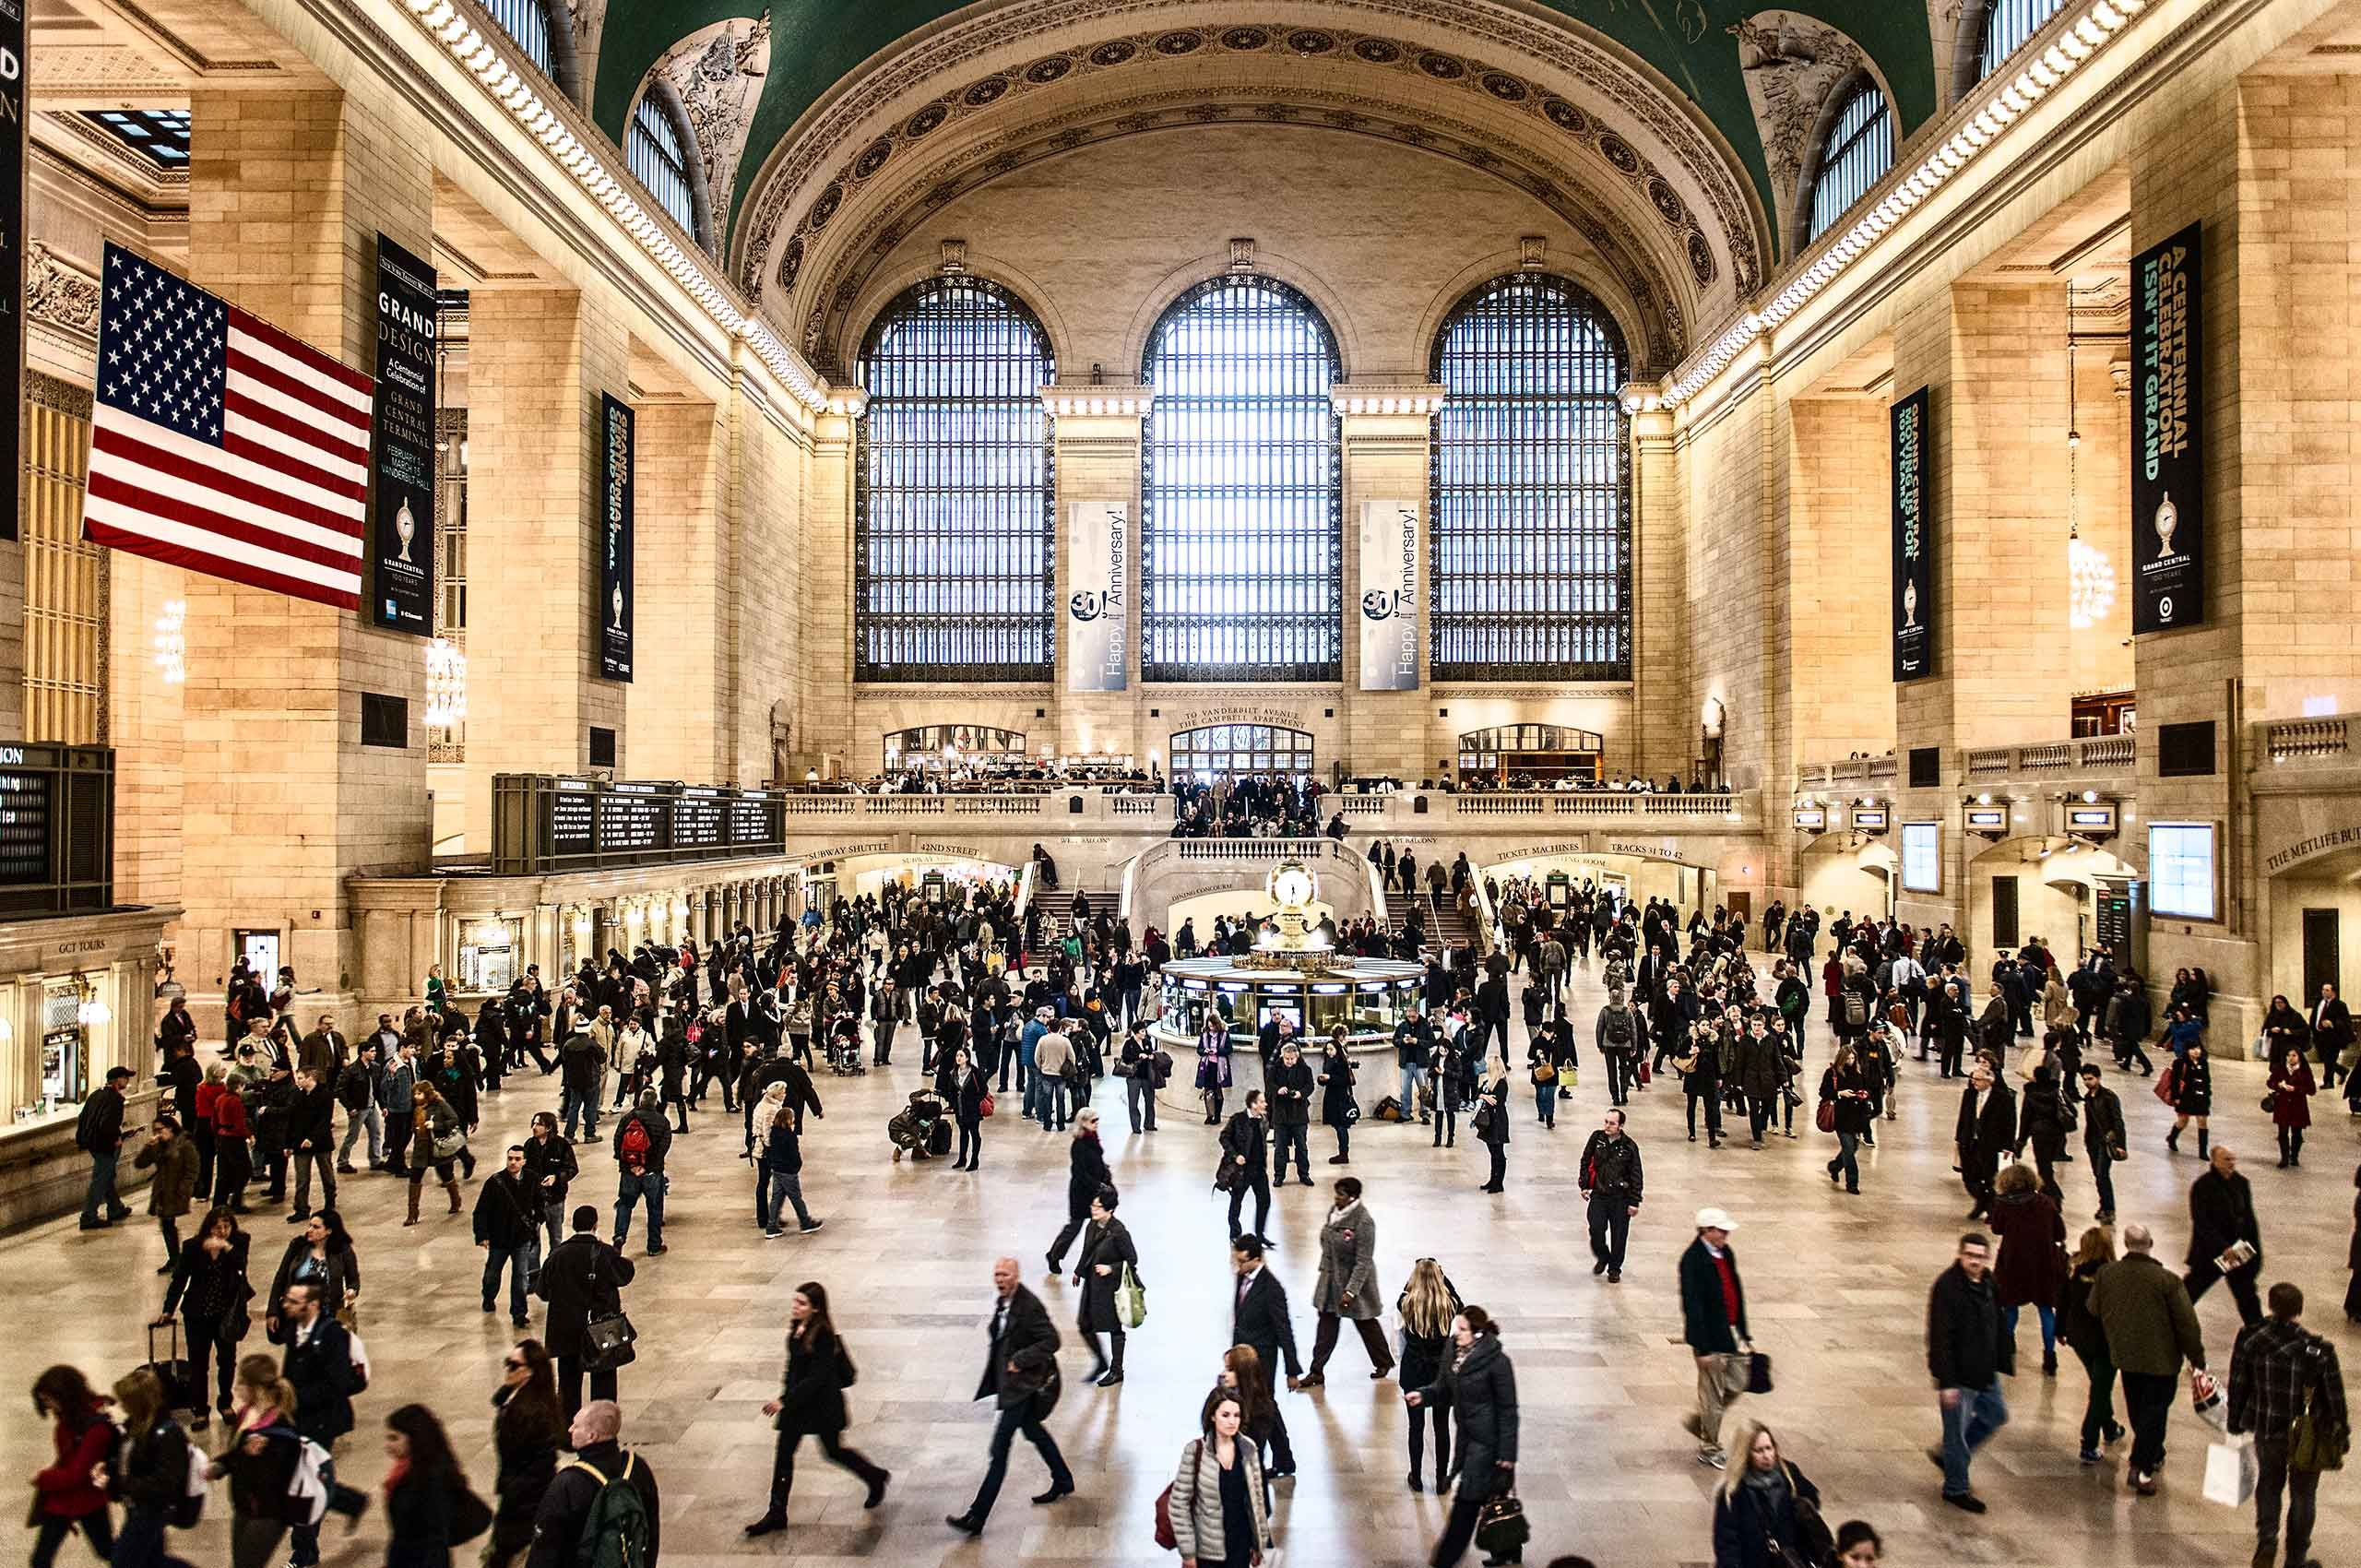 grandcentralstation-rushhour-commuters-by-HenrikOlundPhotography-HenrikOlundPhotography.jpg